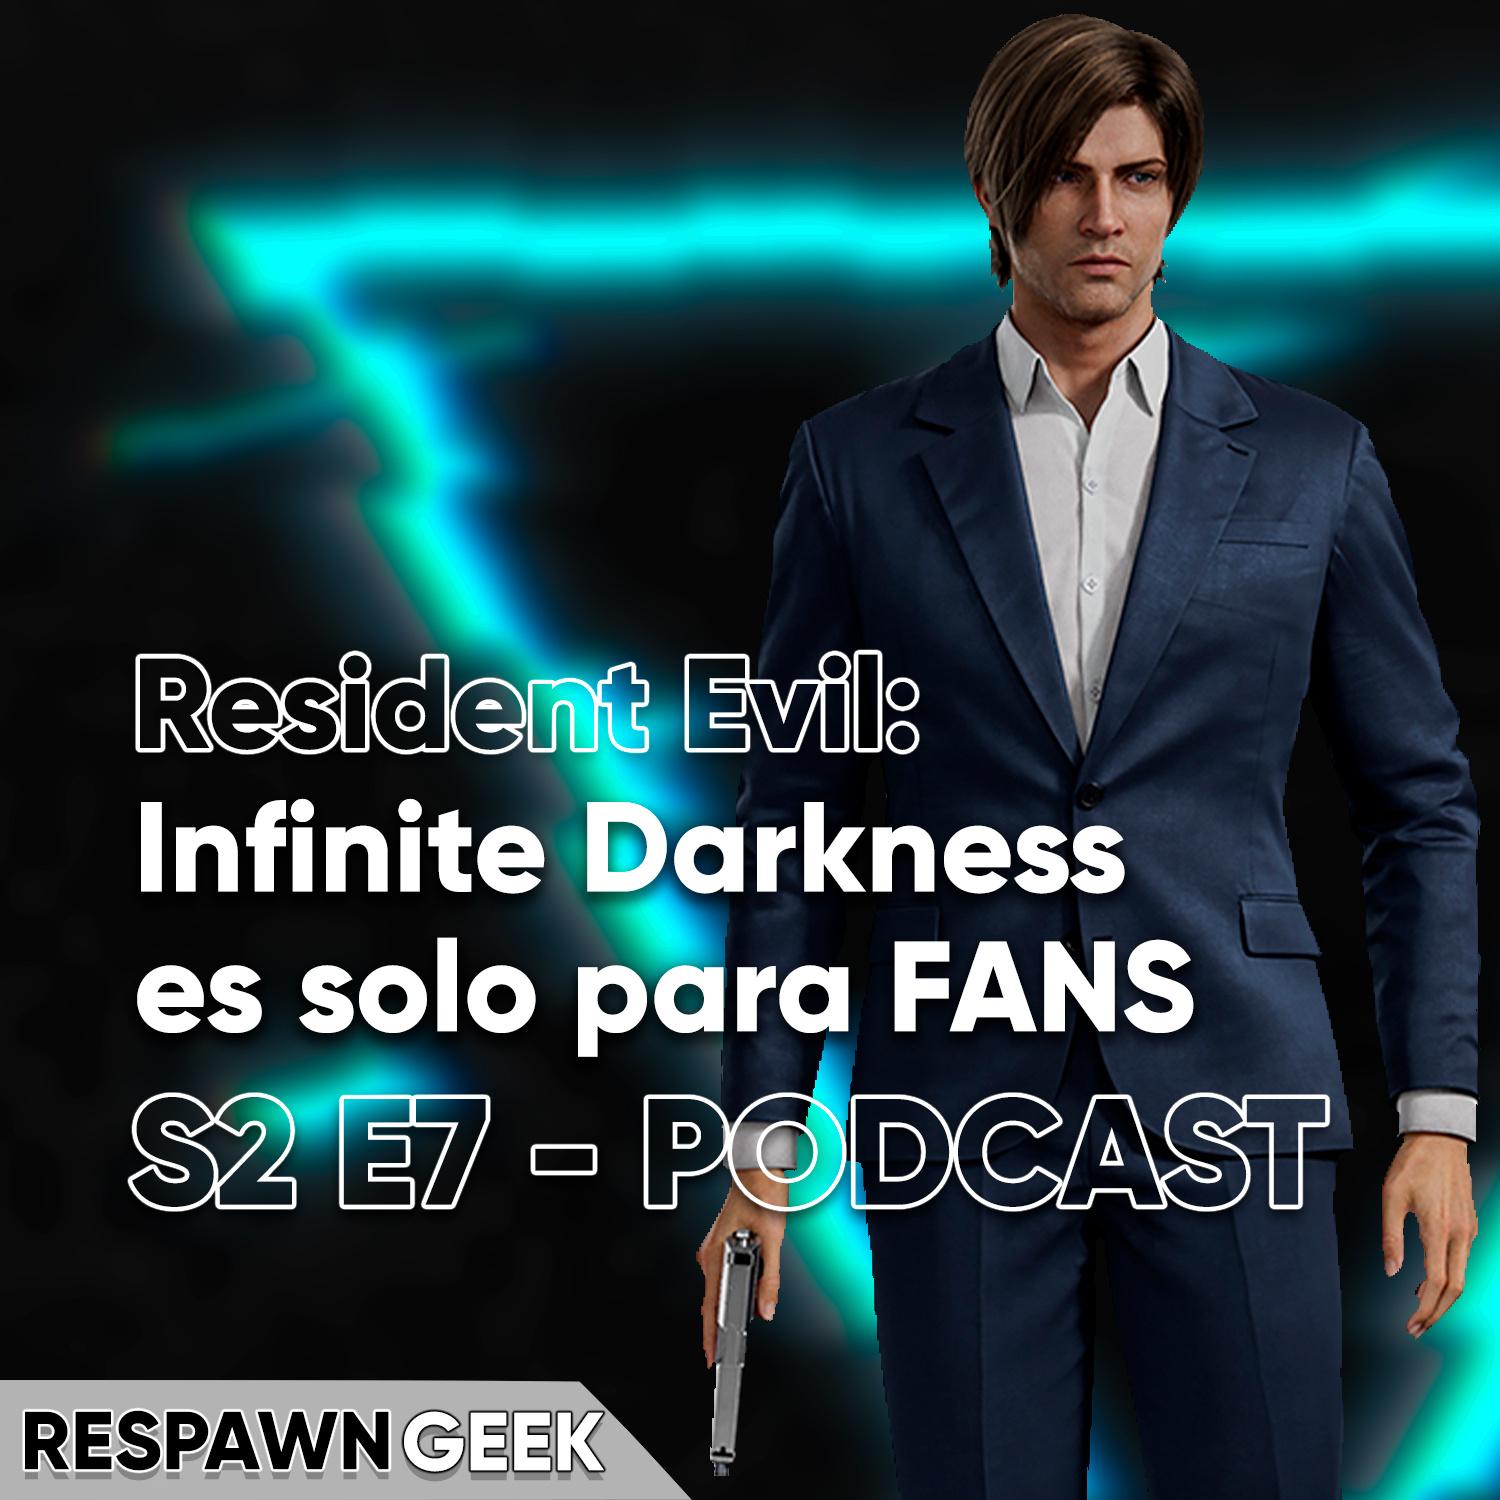 S2 E7 Resident Evil Infinite Darkness es solo para FANS